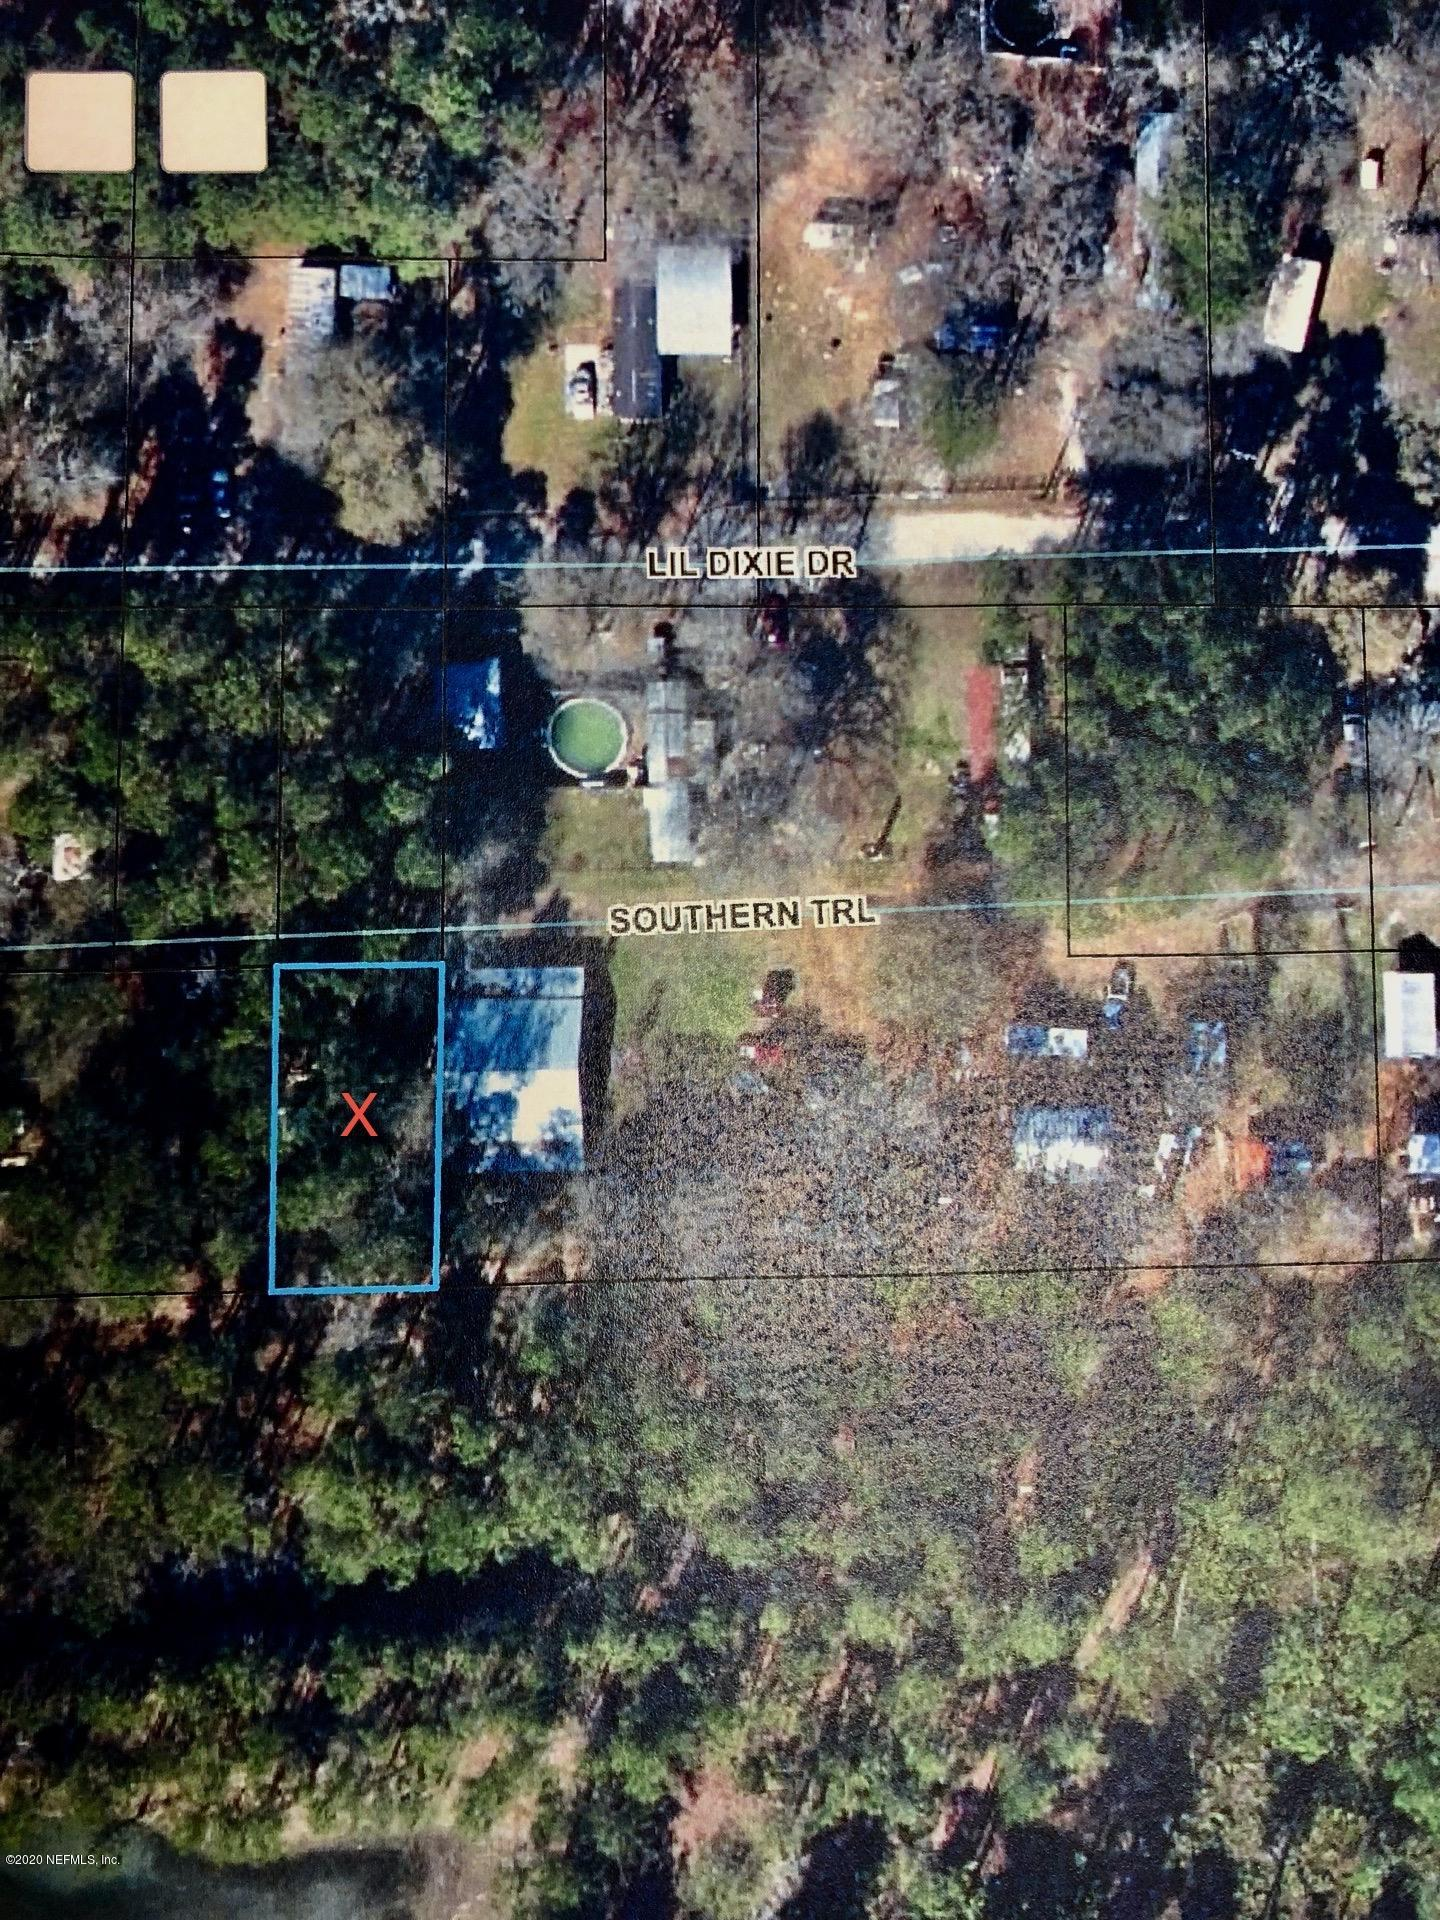 0 SOUTHERN, SANDERSON, FLORIDA 32087, ,Vacant land,For sale,SOUTHERN,1046649